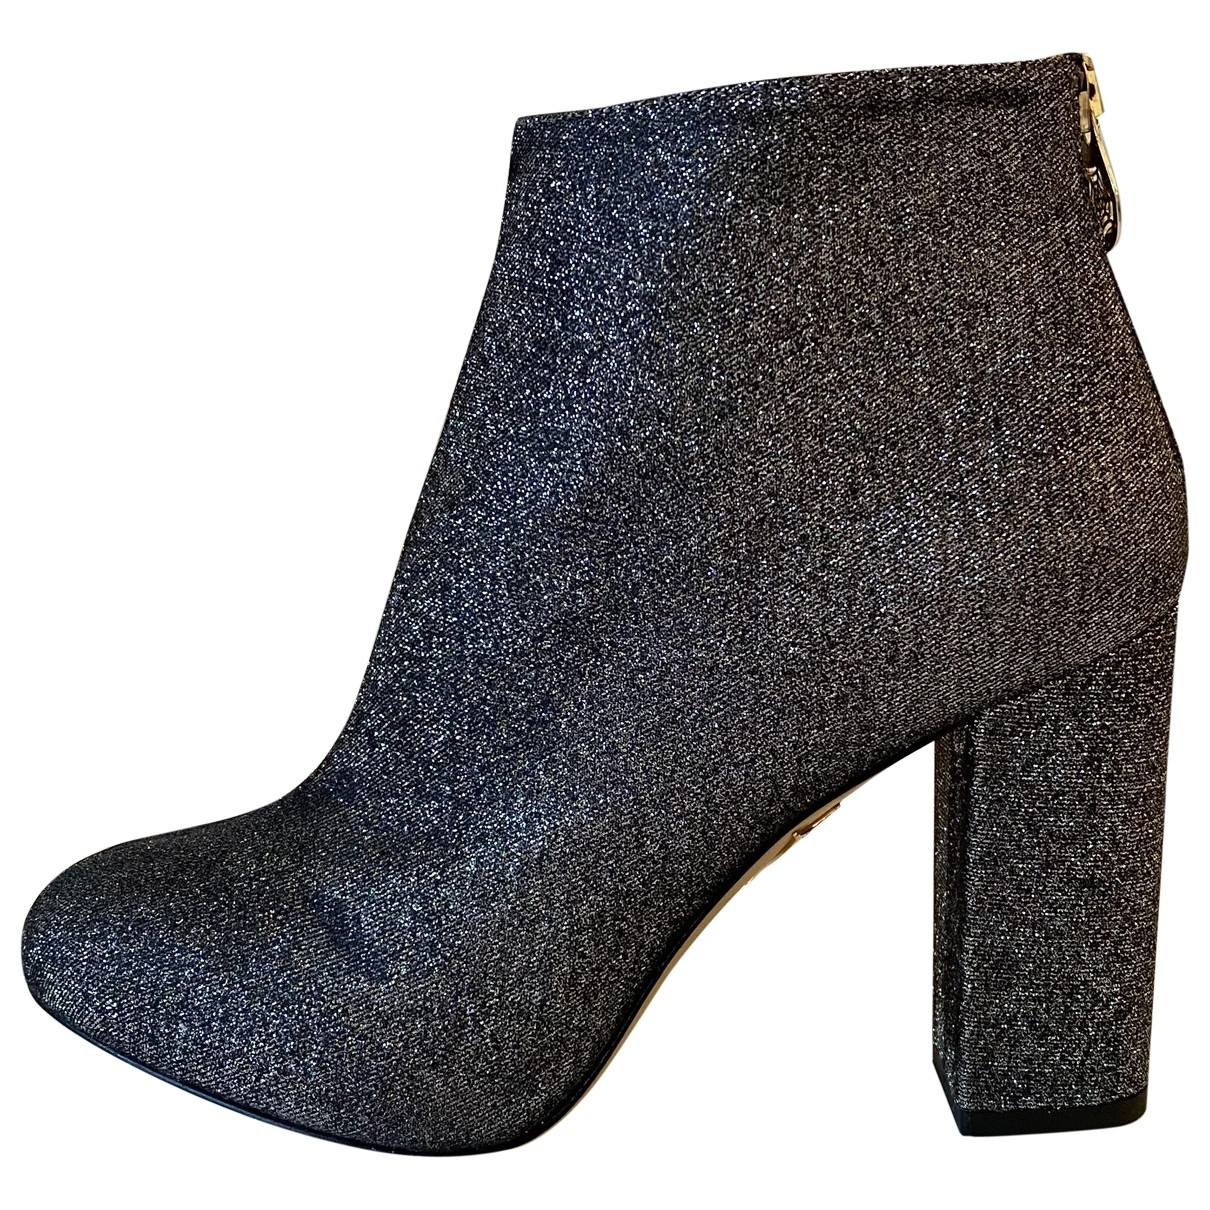 Charlotte Olympia \N Silver Glitter Ankle boots for Women 39 EU